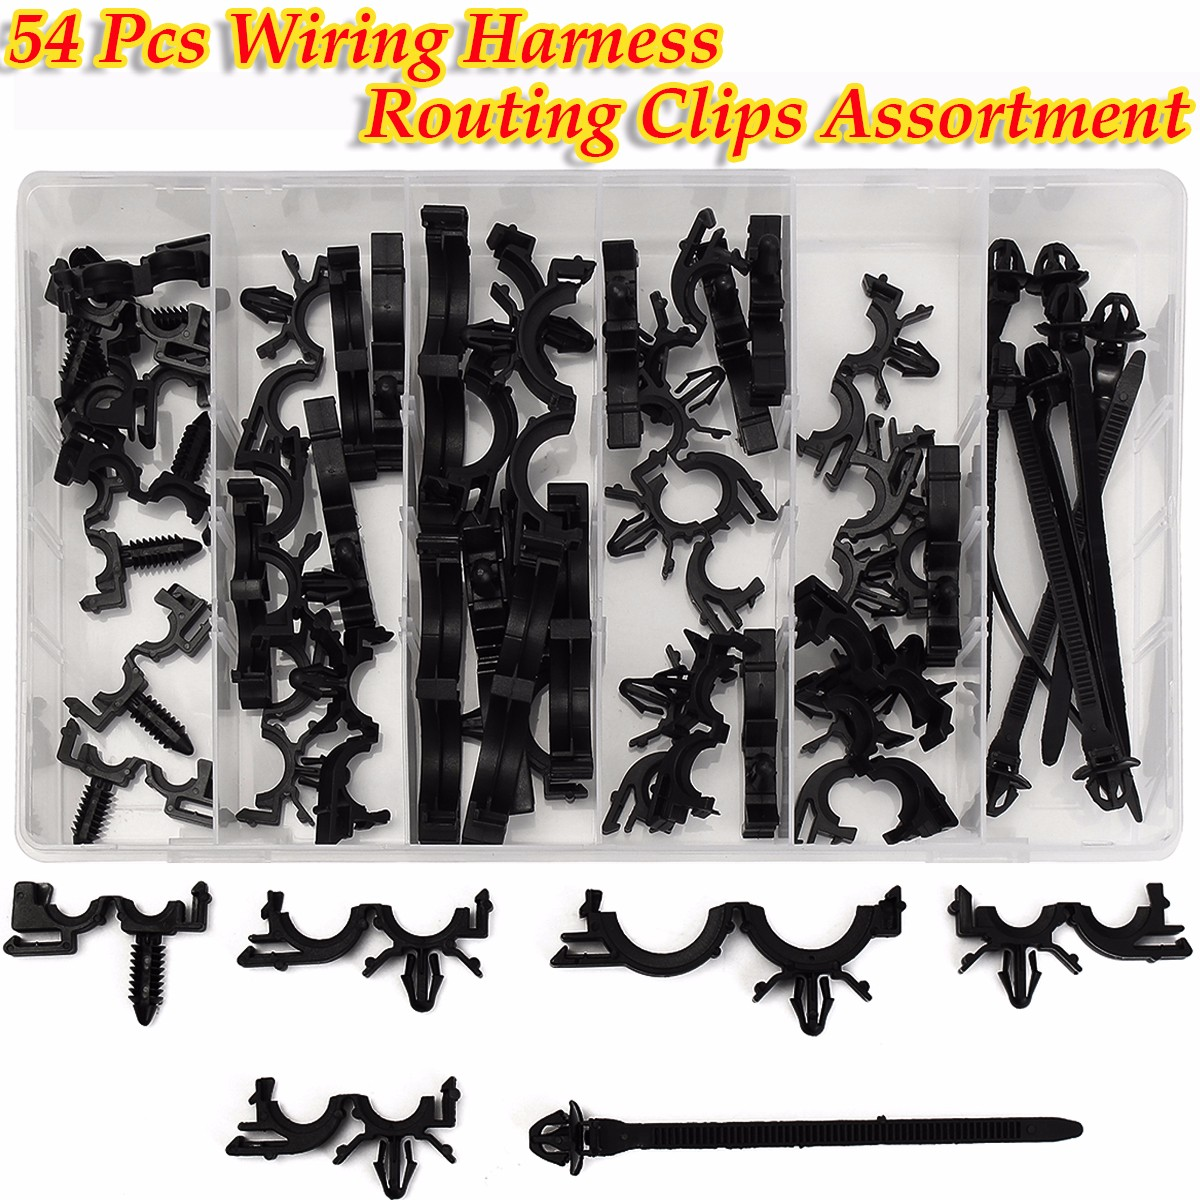 New 54Pcs Wiring Harness Wire Loom Routing Clips Kit Assortment Convoluted  Conduit for GM with Box Auto Interior Fastener Set-in Auto Fastener & Clip  from ...